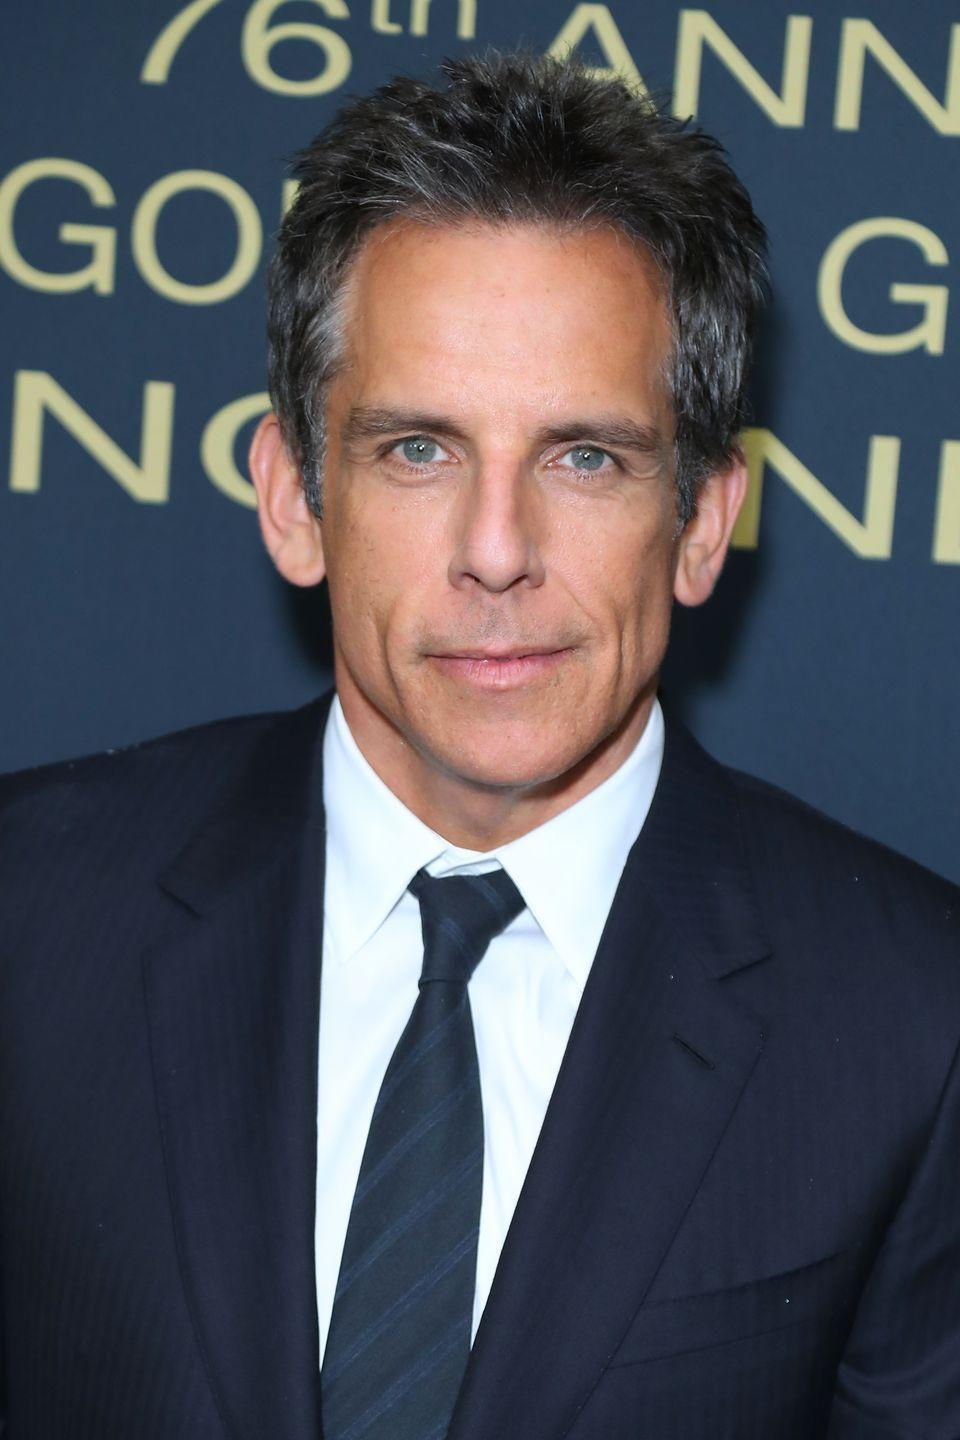 """<p>Nearly a decade would pass before Stiller gained widespread fame with his starring role in <em>There's </em><em>Something About Mary</em>. Subsequent hits, not least among them the <em>Meet the Parents</em> and <em>Night at the Museum</em> franchises, made him a household name.</p><p><strong>RELATED:</strong> <a href=""""https://www.goodhousekeeping.com/life/entertainment/g31119057/best-celebrity-cameos/"""" rel=""""nofollow noopener"""" target=""""_blank"""" data-ylk=""""slk:The Best Celebrity Cameos in TV and Movie History"""" class=""""link rapid-noclick-resp"""">The Best Celebrity Cameos in TV and Movie History</a></p>"""